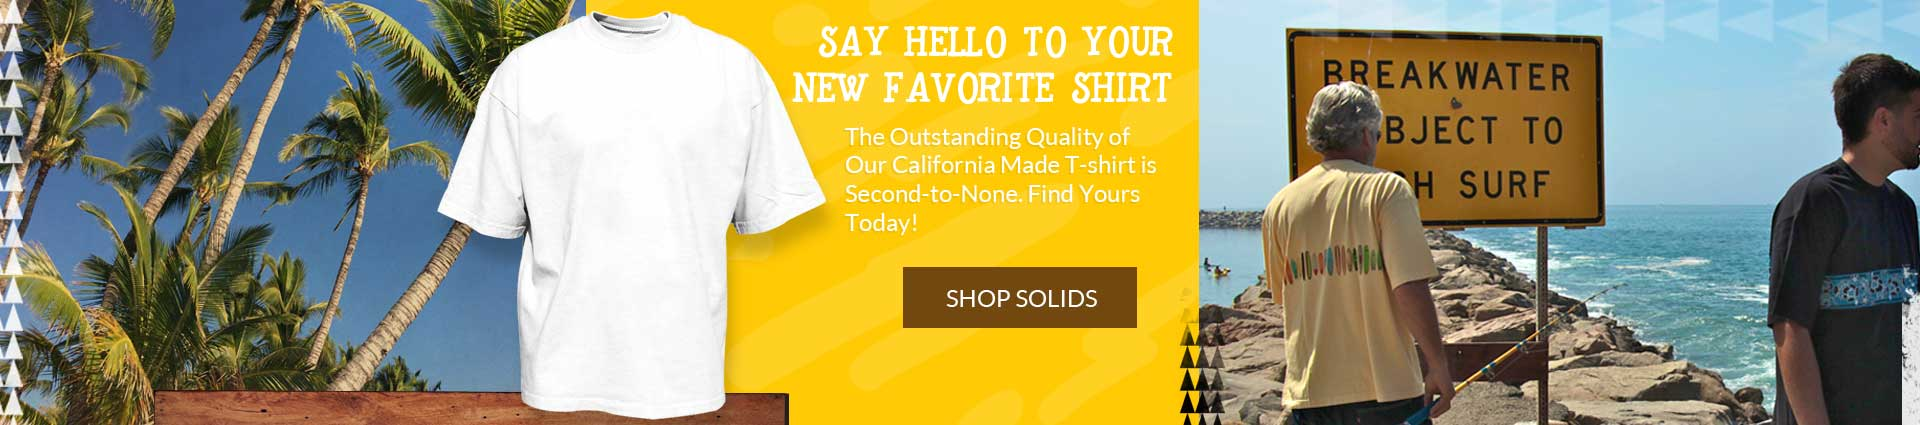 Get a blank tee made from high quality cotton. This is your new favorite t-shirt